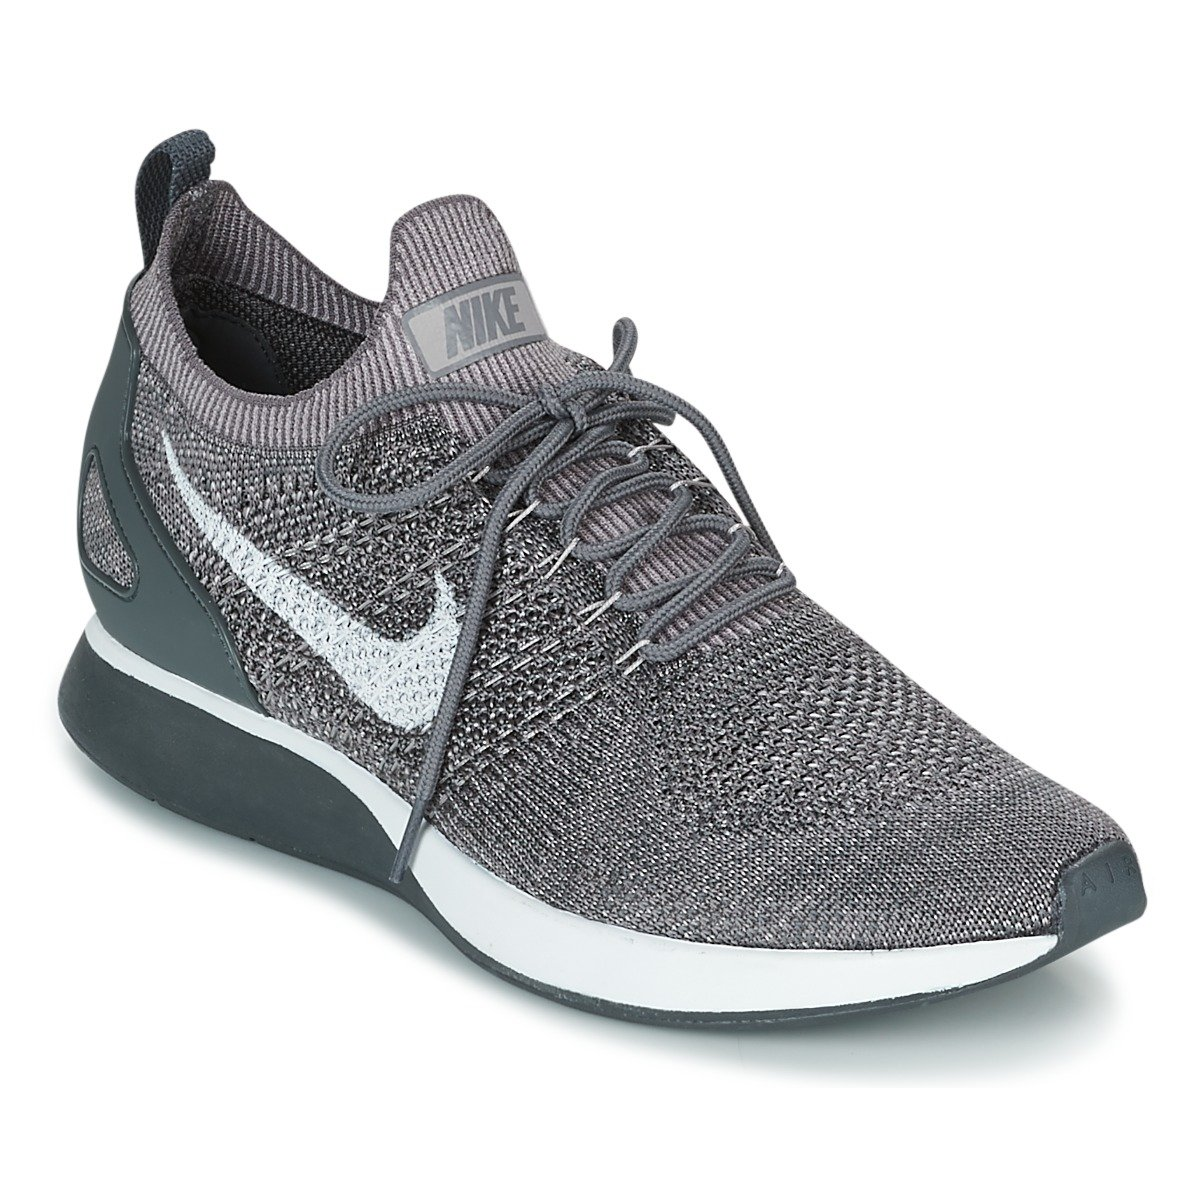 Nike Women's Free Rn Flyknit 2017 Running Shoes B079QMFYB2 11.5 D(M) US|Gunsmoke/White-atmosphere Grey